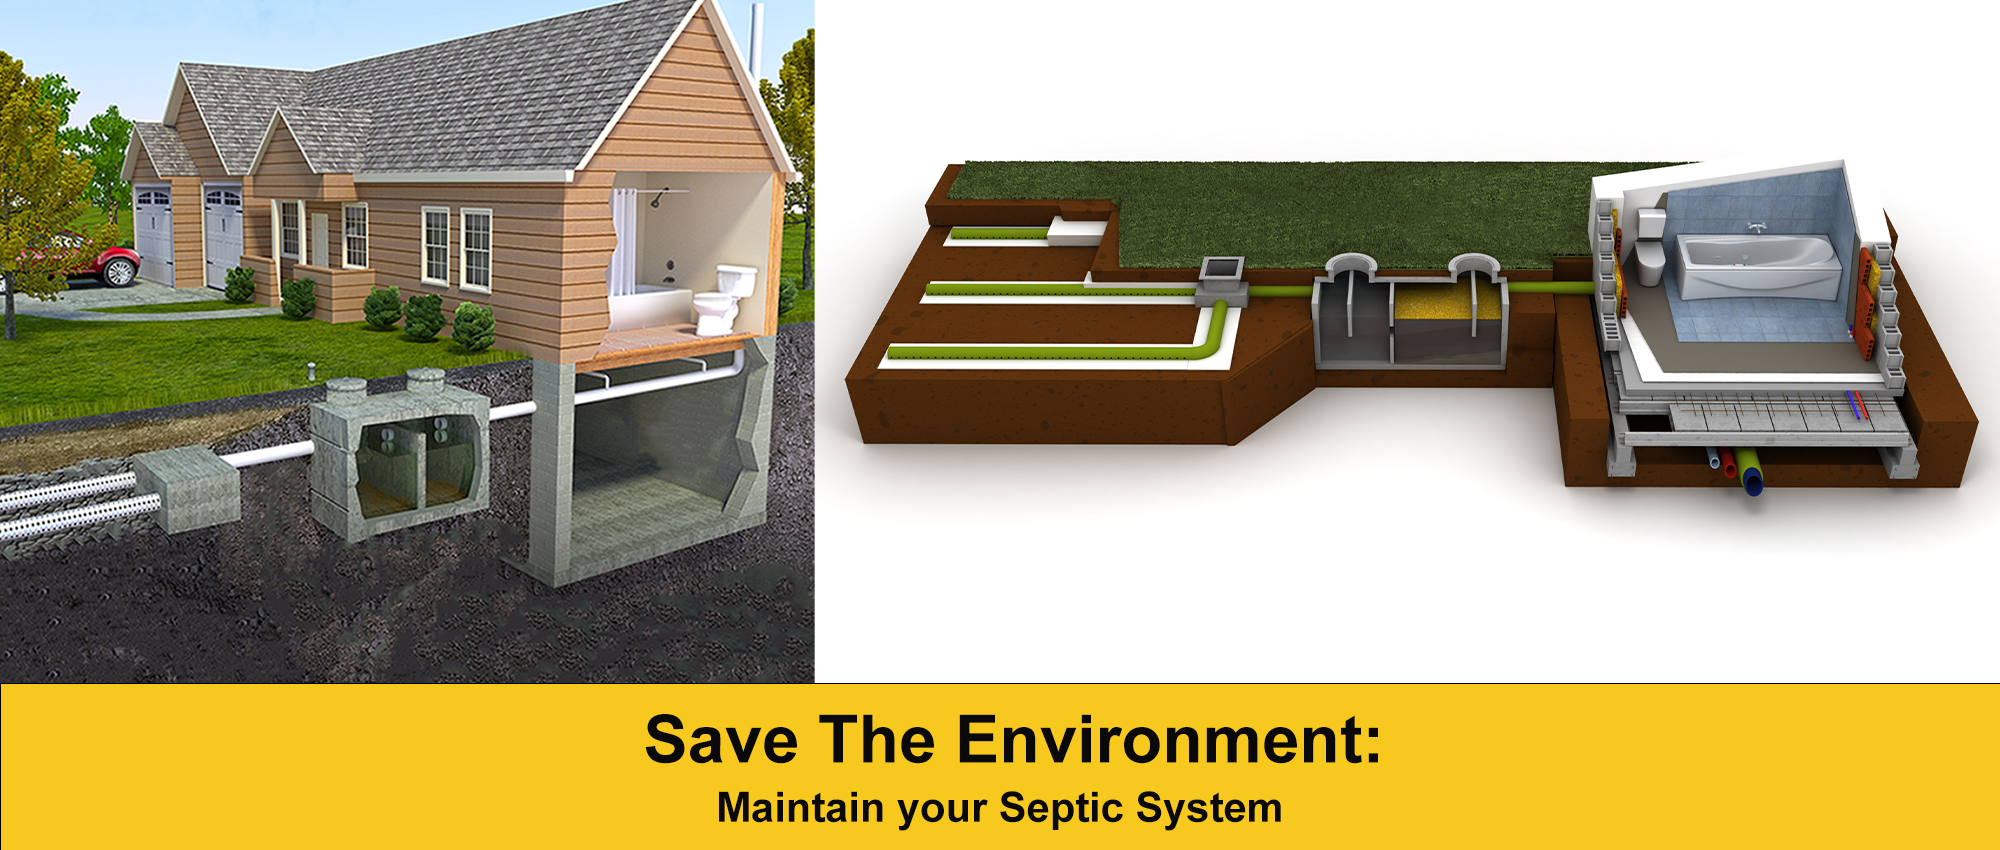 Save The Environment: Maintain Your Septic System